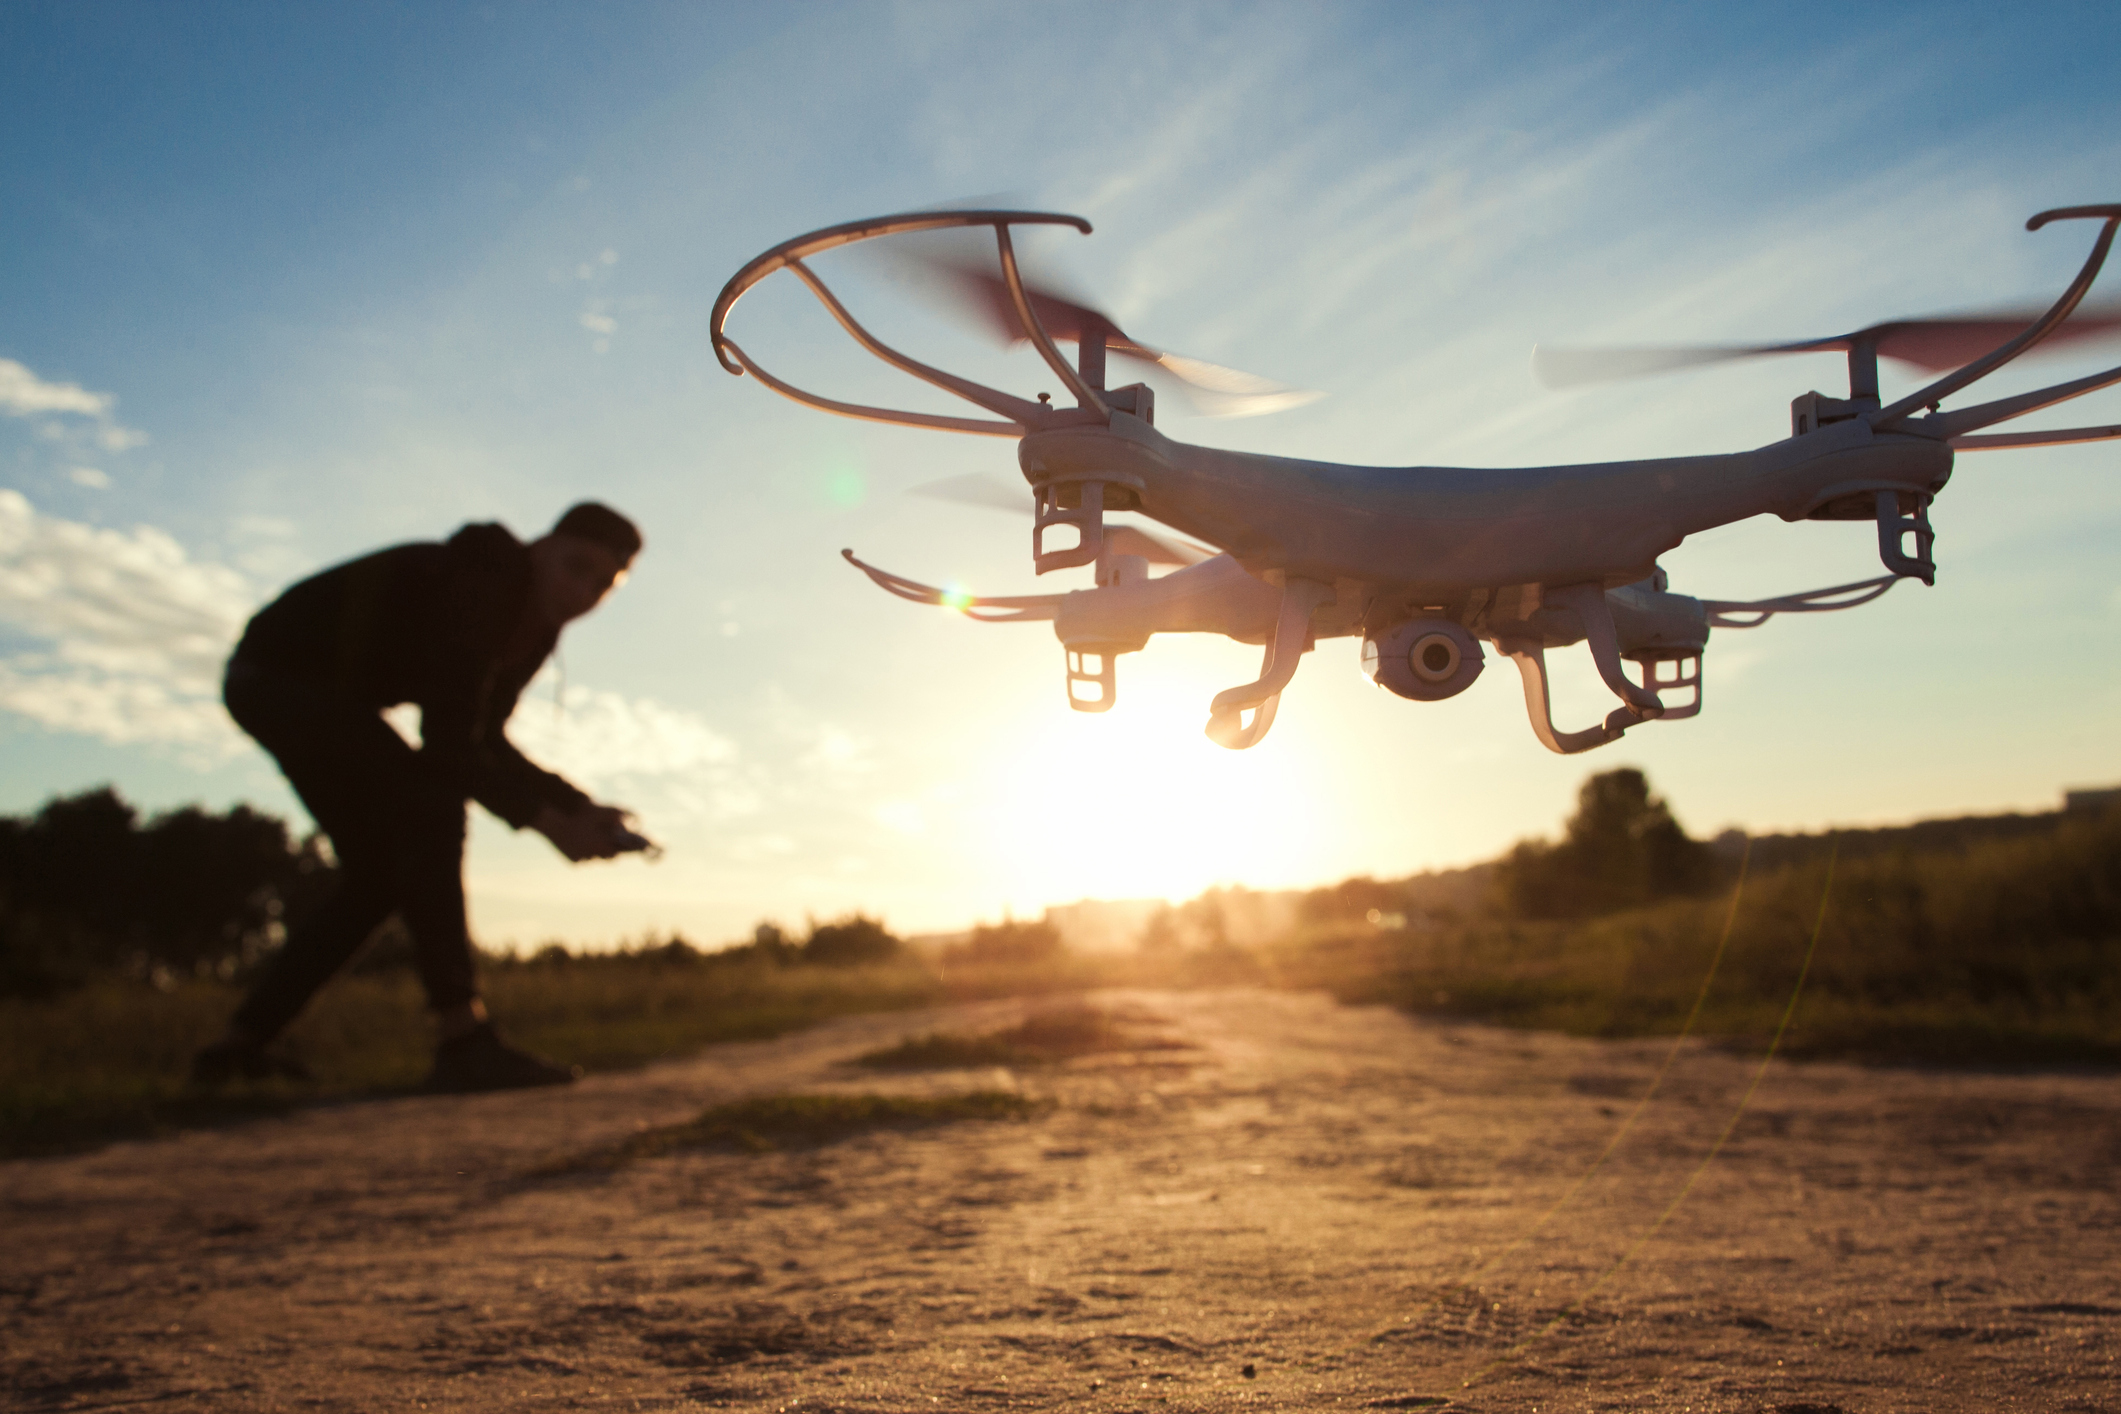 A Drone Technology and Operation class will be held at Richmond Community College on Saturday, March 25, from 8 a.m. to 5 p.m.